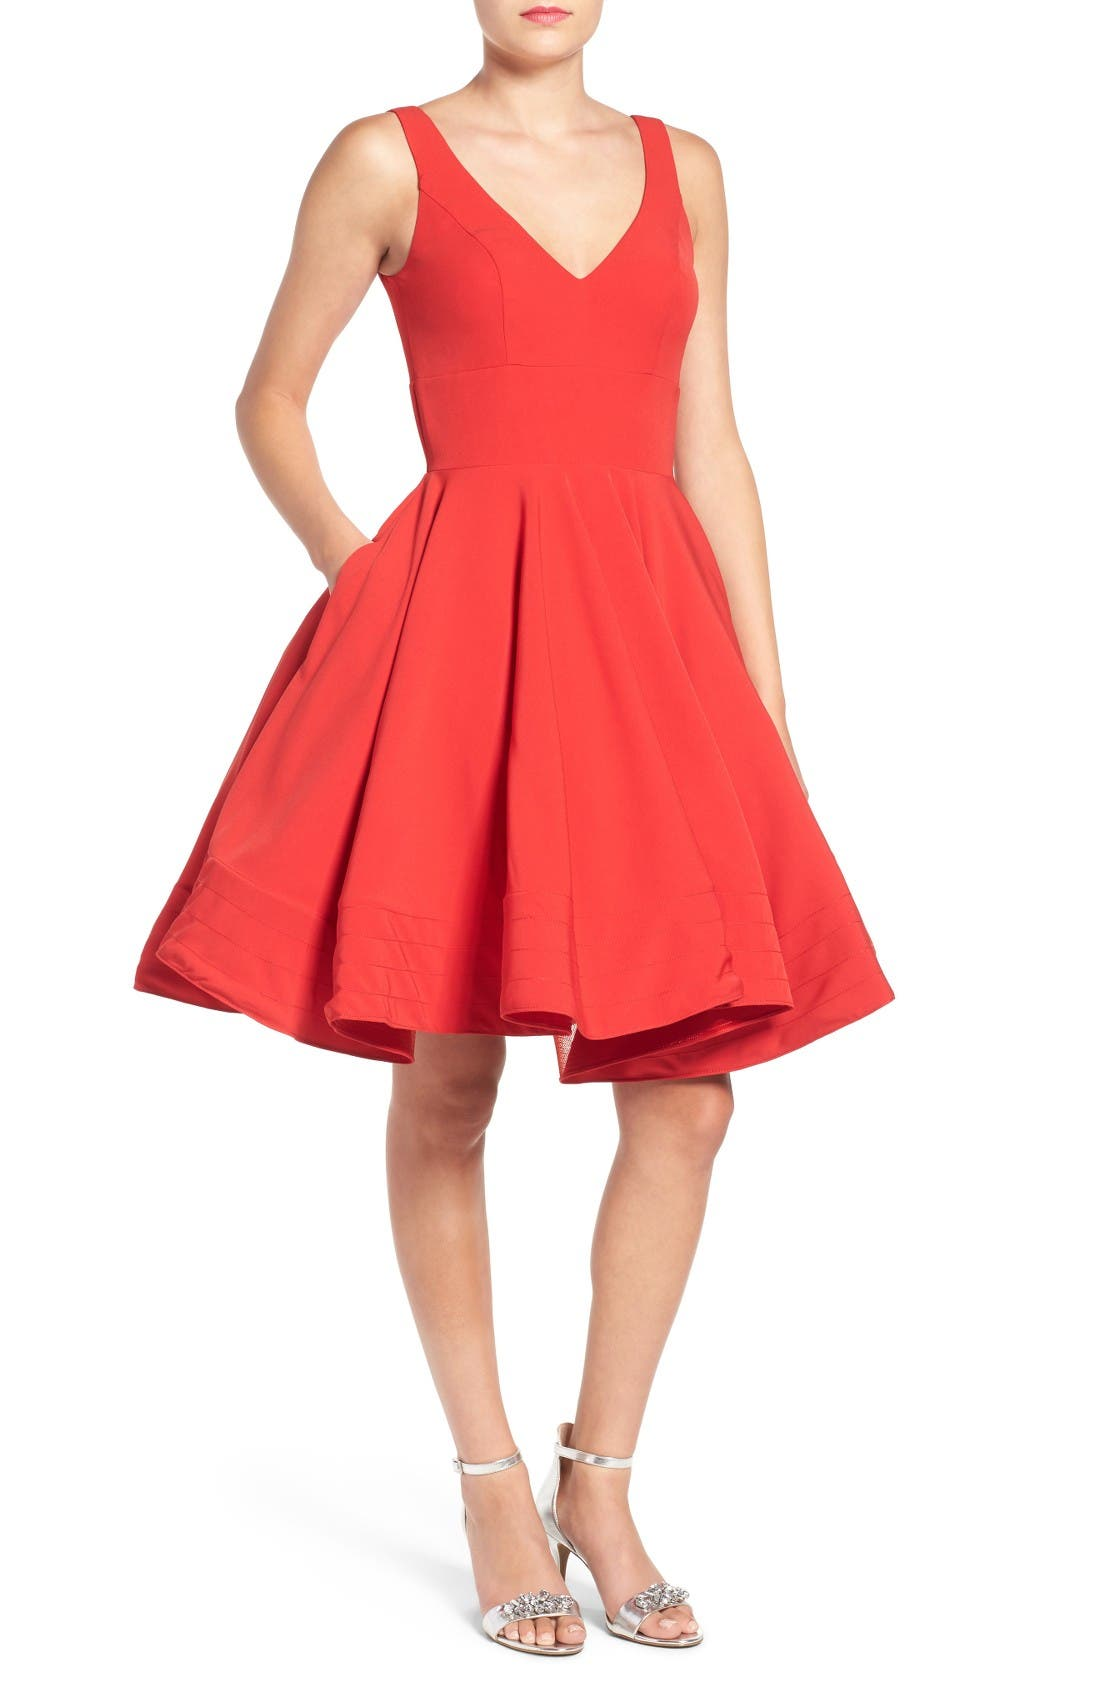 Alternate Image 1 Selected - Ieena for Mac Duggal Double V-Neck Fit & Flare Party Dress